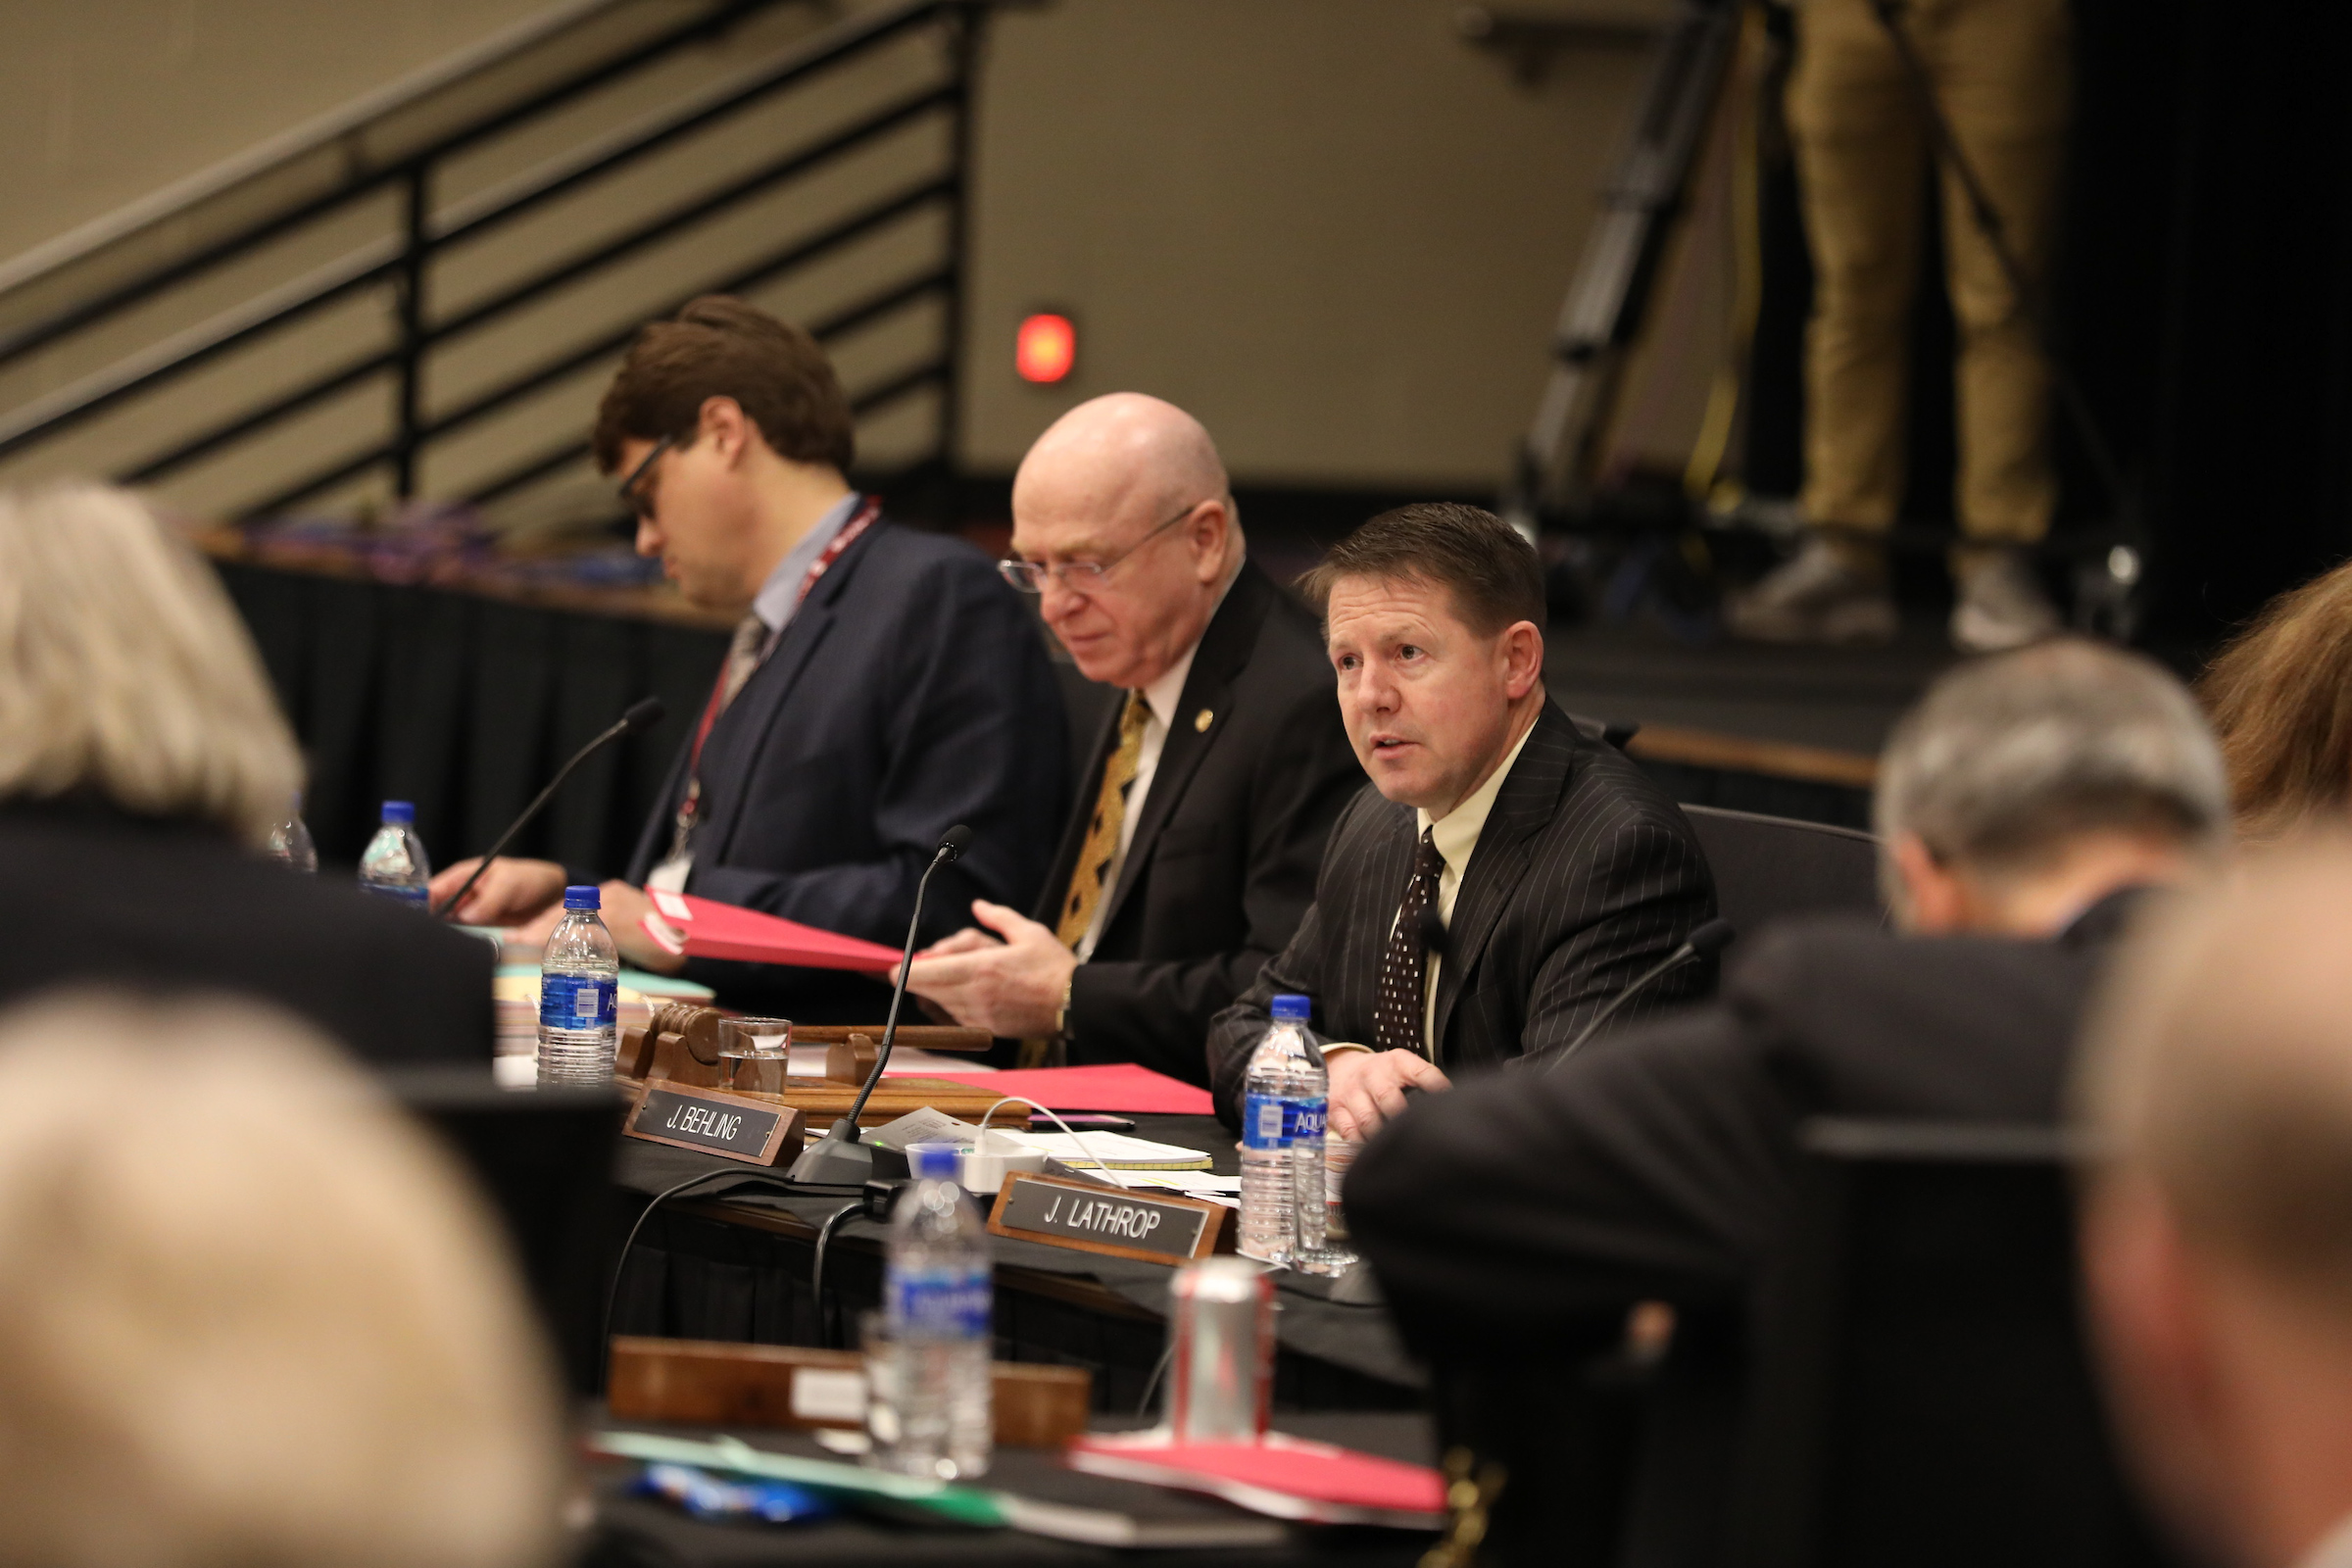 Photo of (from left) General Counsel Quinn Williams, UW System President Ray Cross, and Regent President John Robert Behling, taken at UW System Board of Regents meeting hosted by UW-La Crosse on December 6, 2018